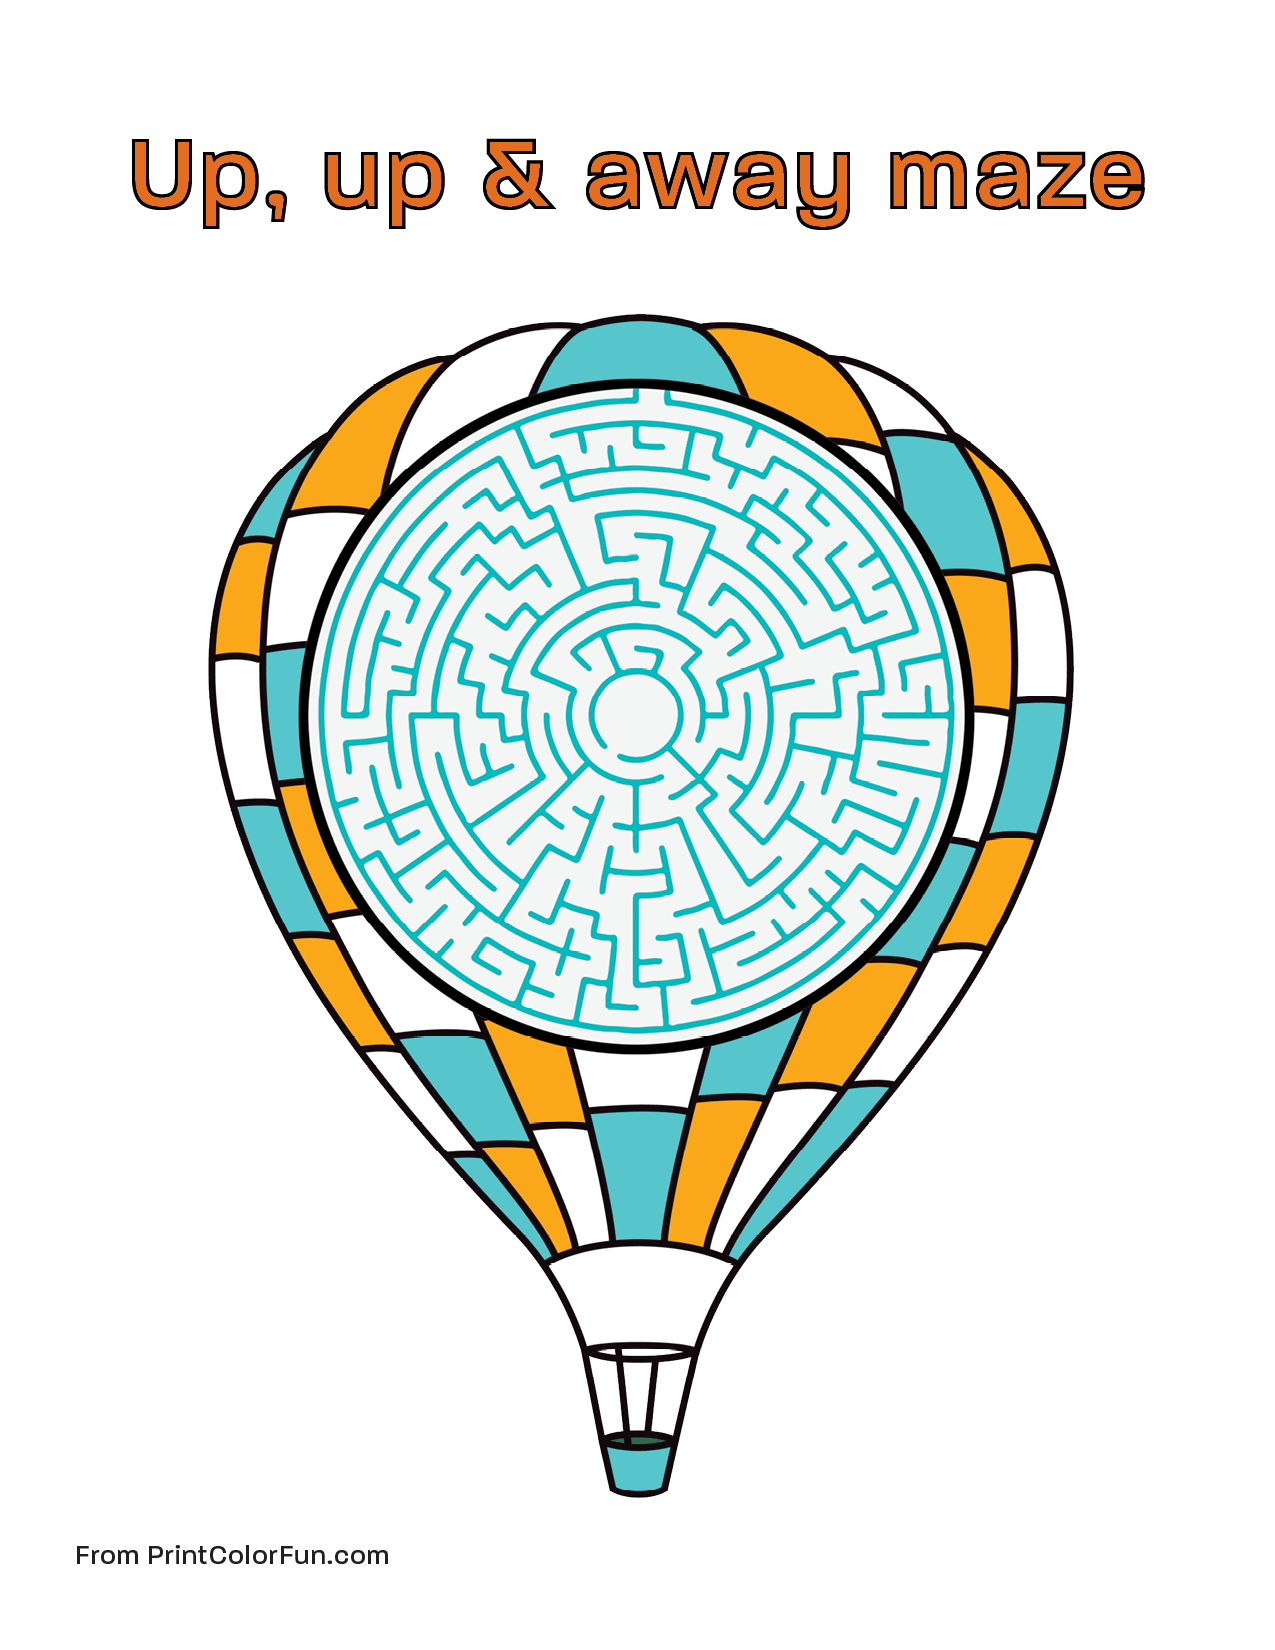 Hot air balloon maze for kids coloring